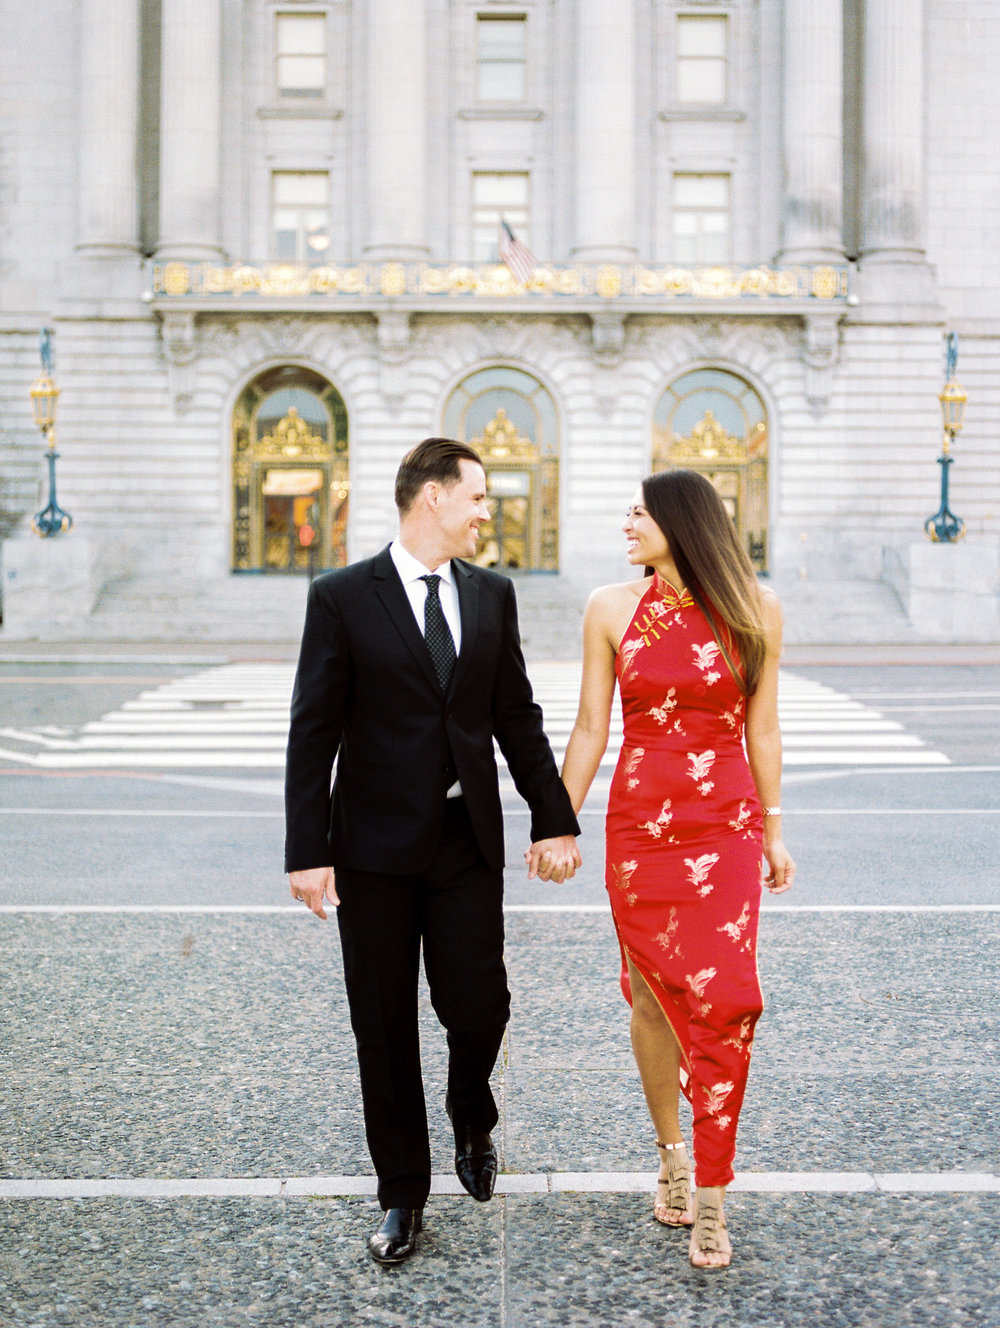 Dan & Sari at SF City Hall